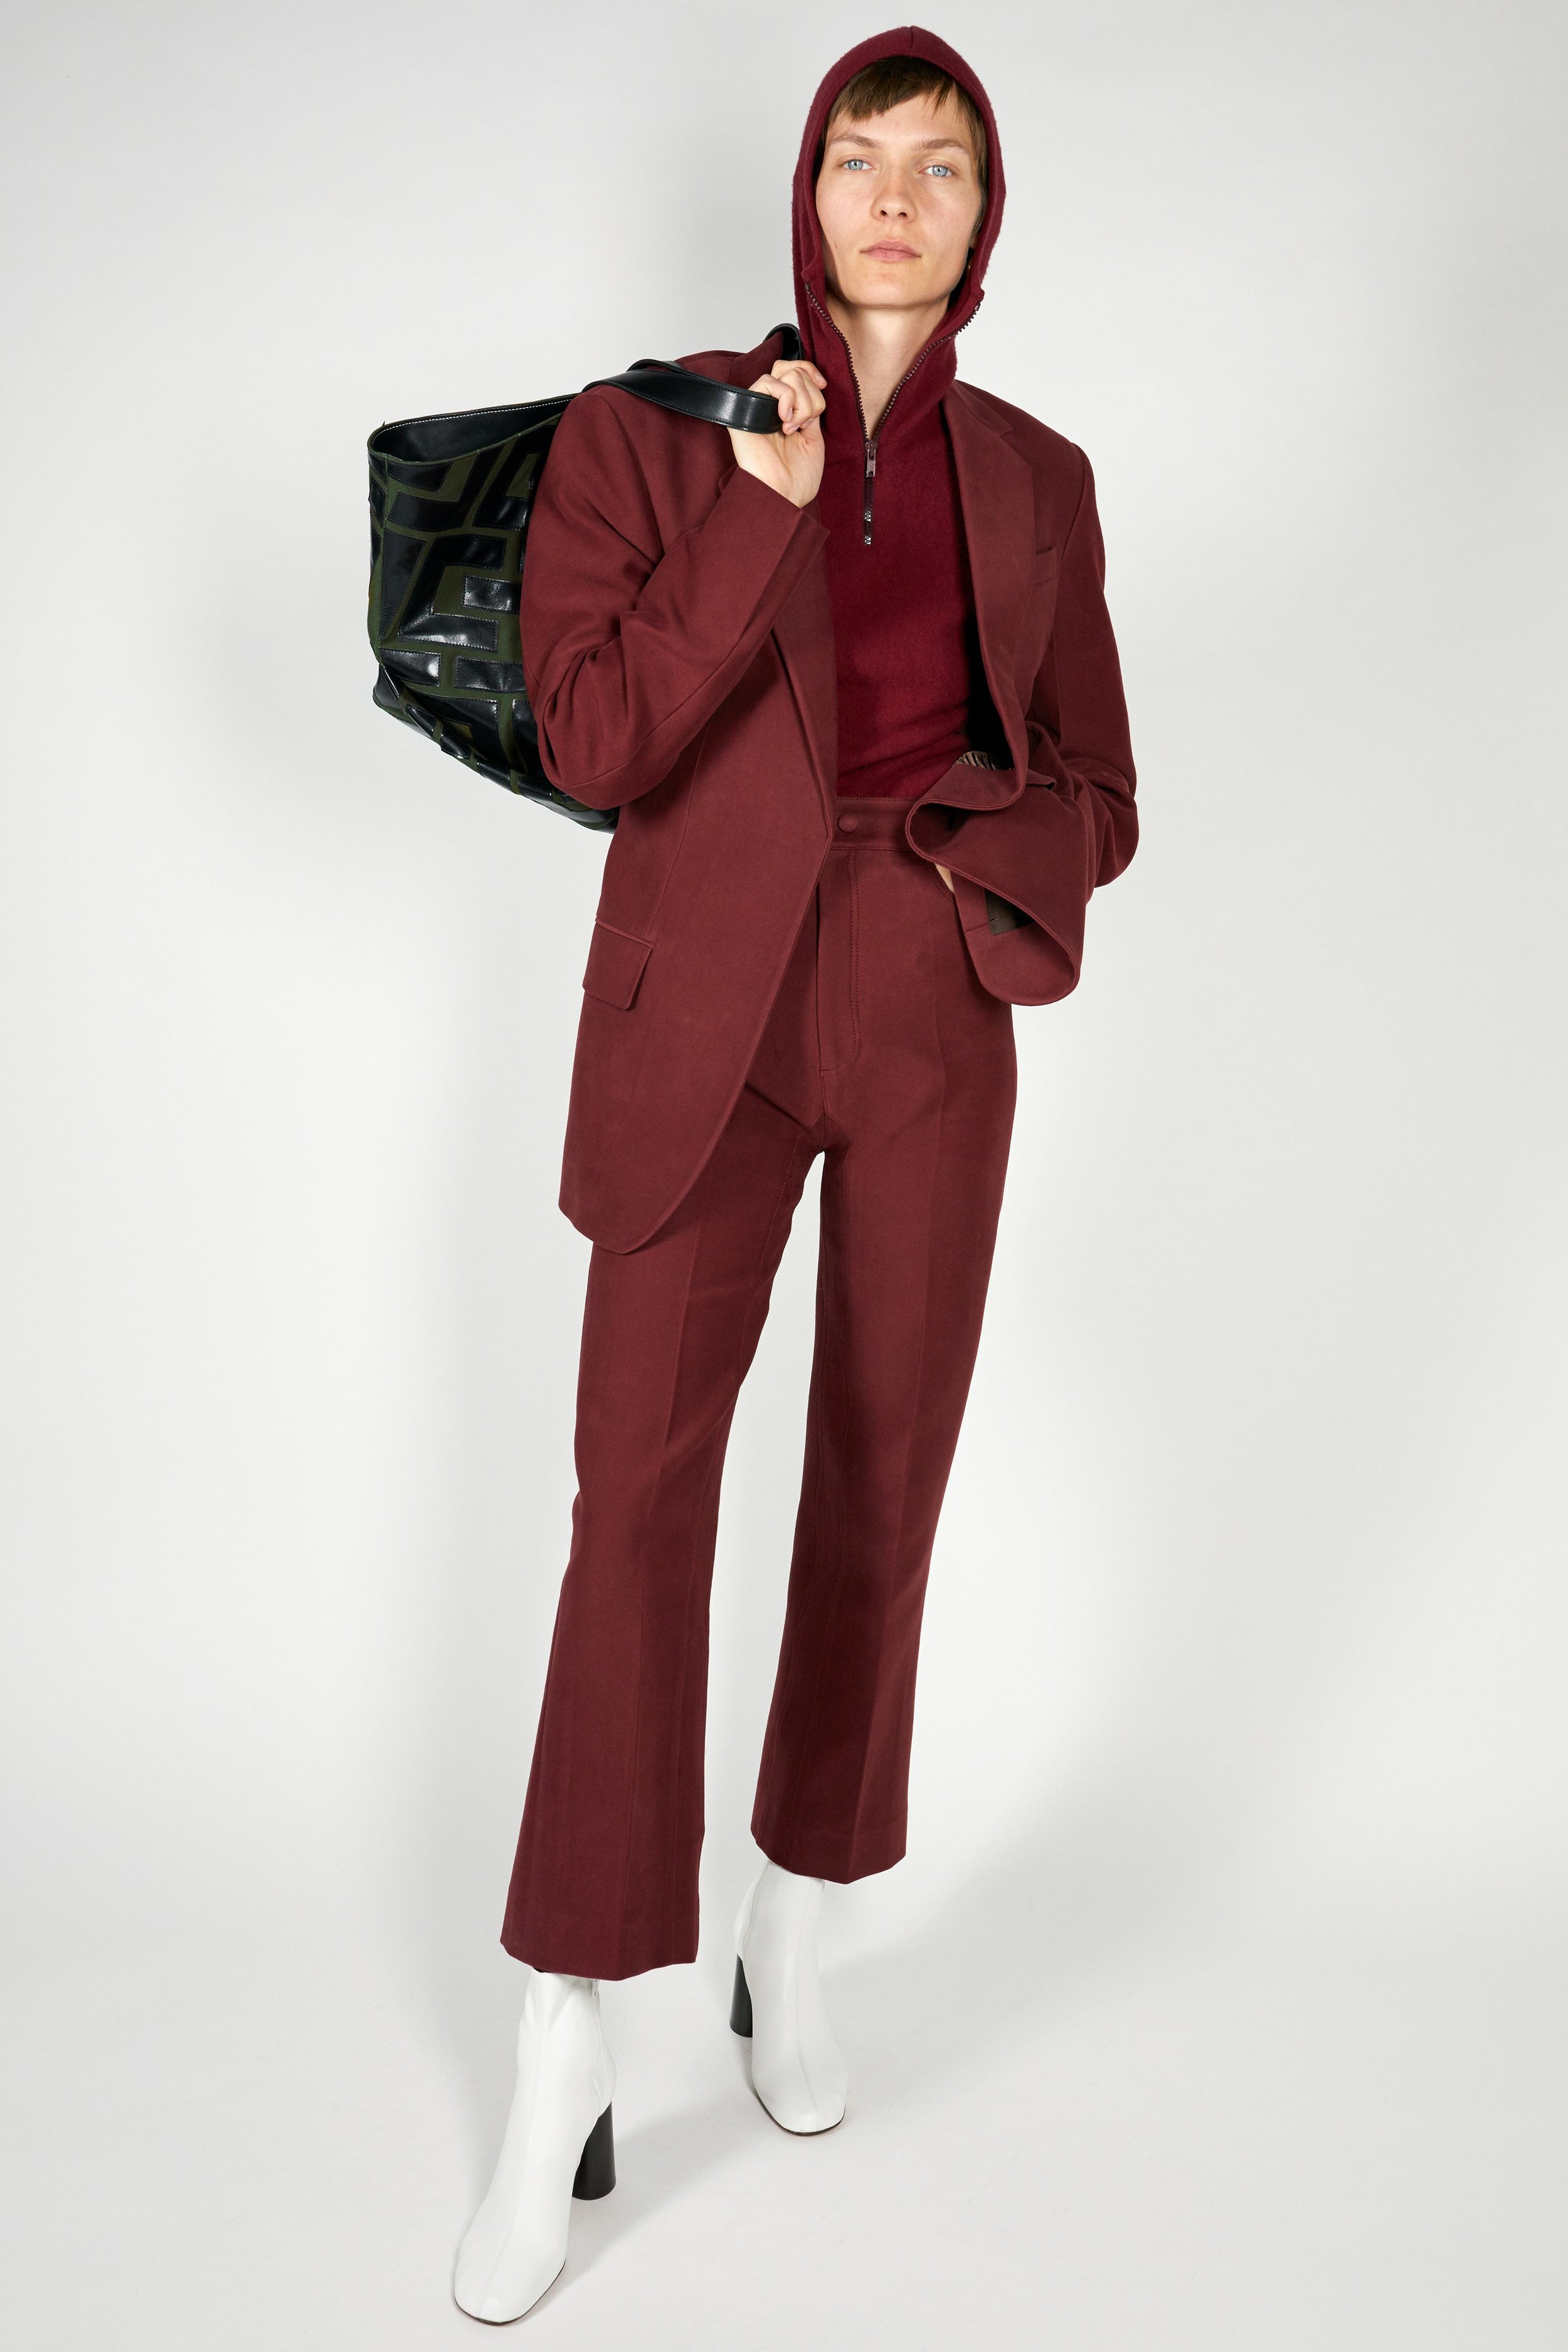 A maroon suit I can't stop thinking about.